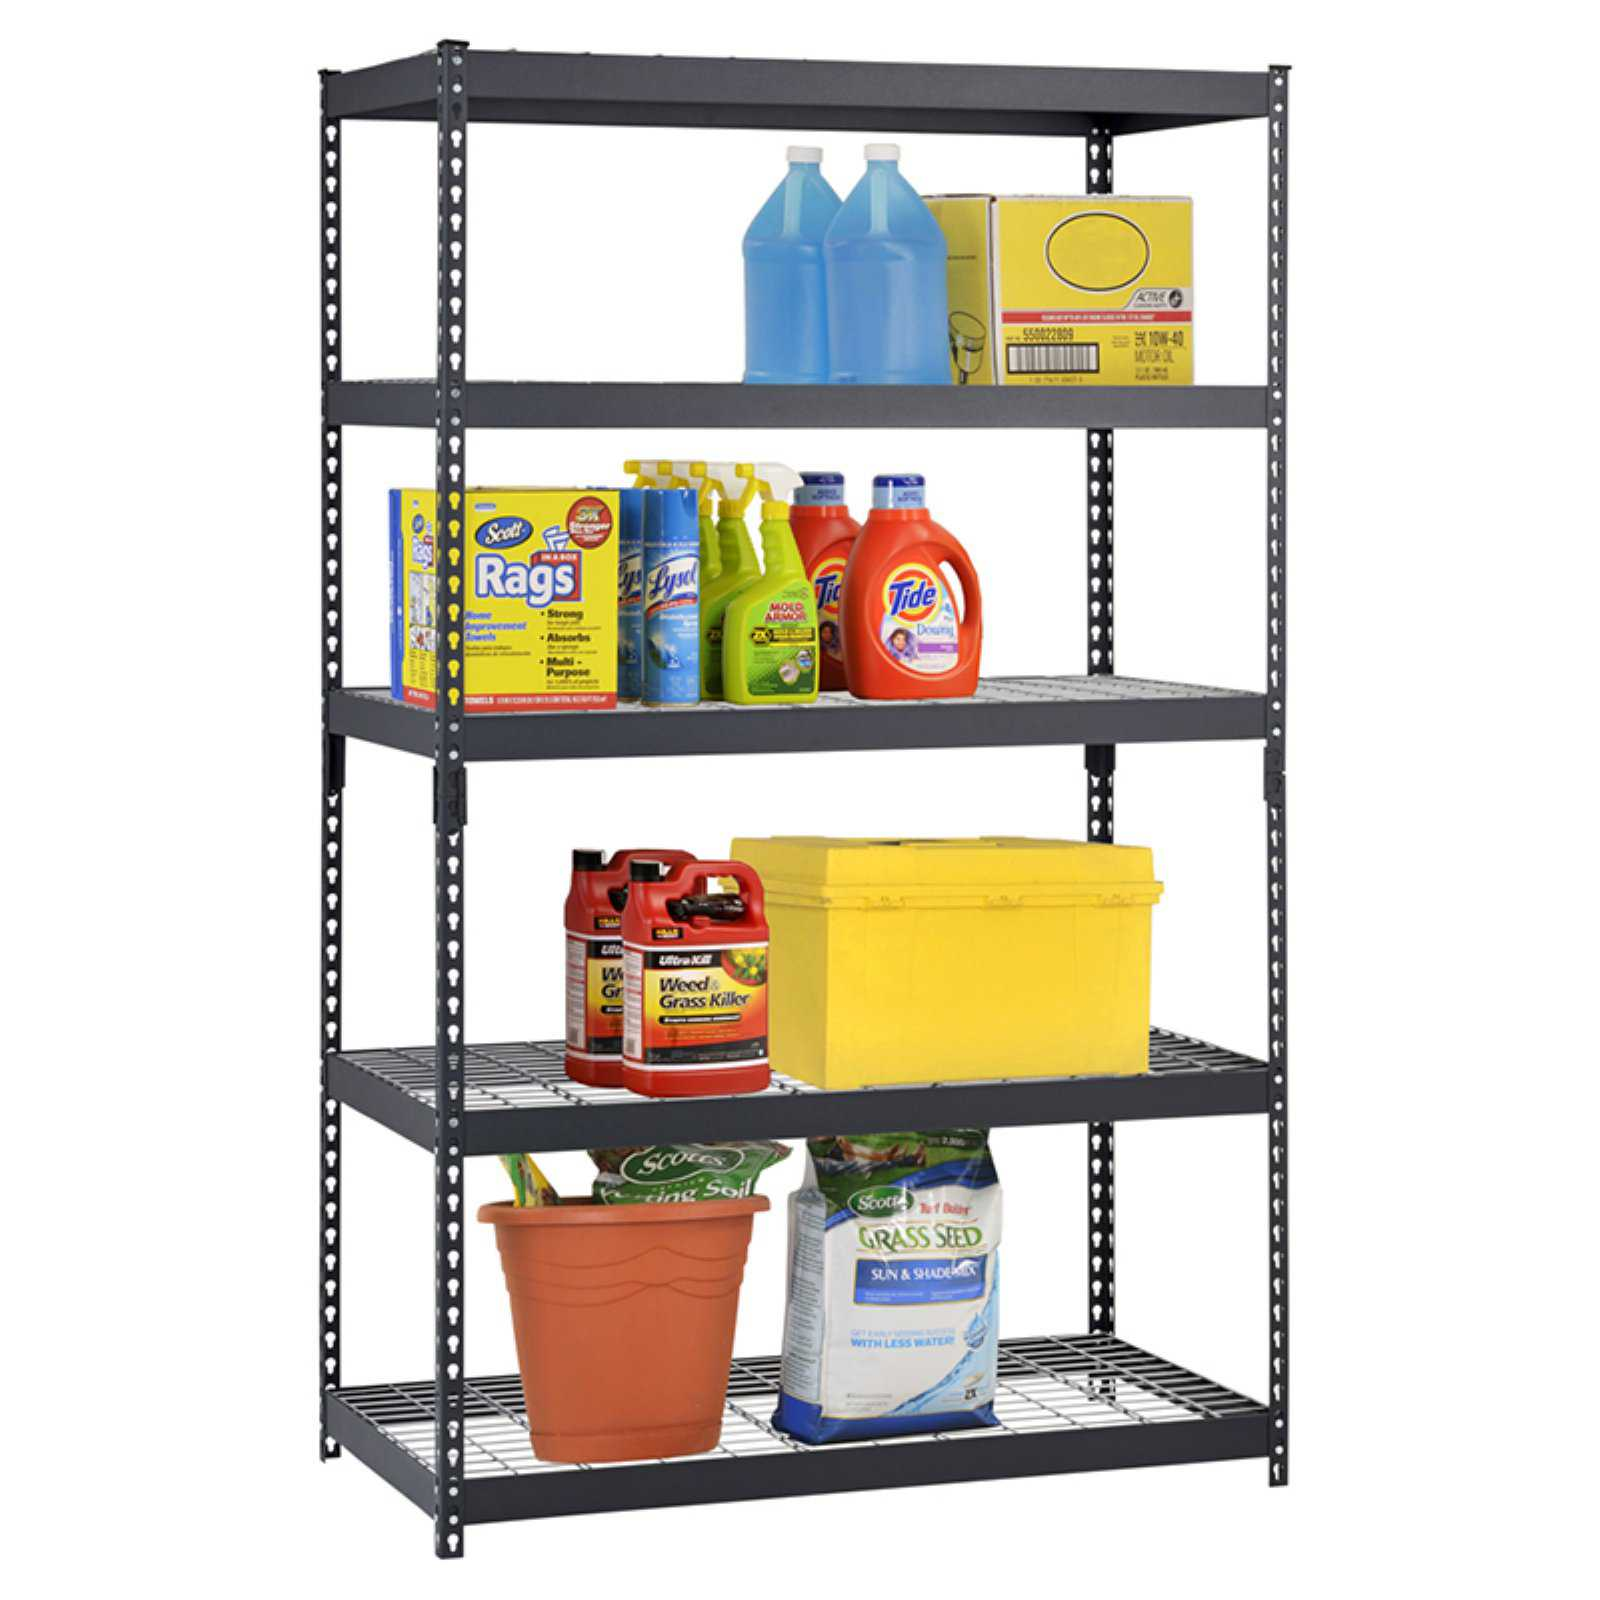 Muscle Rack 48'W x 24'D x 78'H Five-Shelf Heavy-Duty Steel Shelving Unit, Black